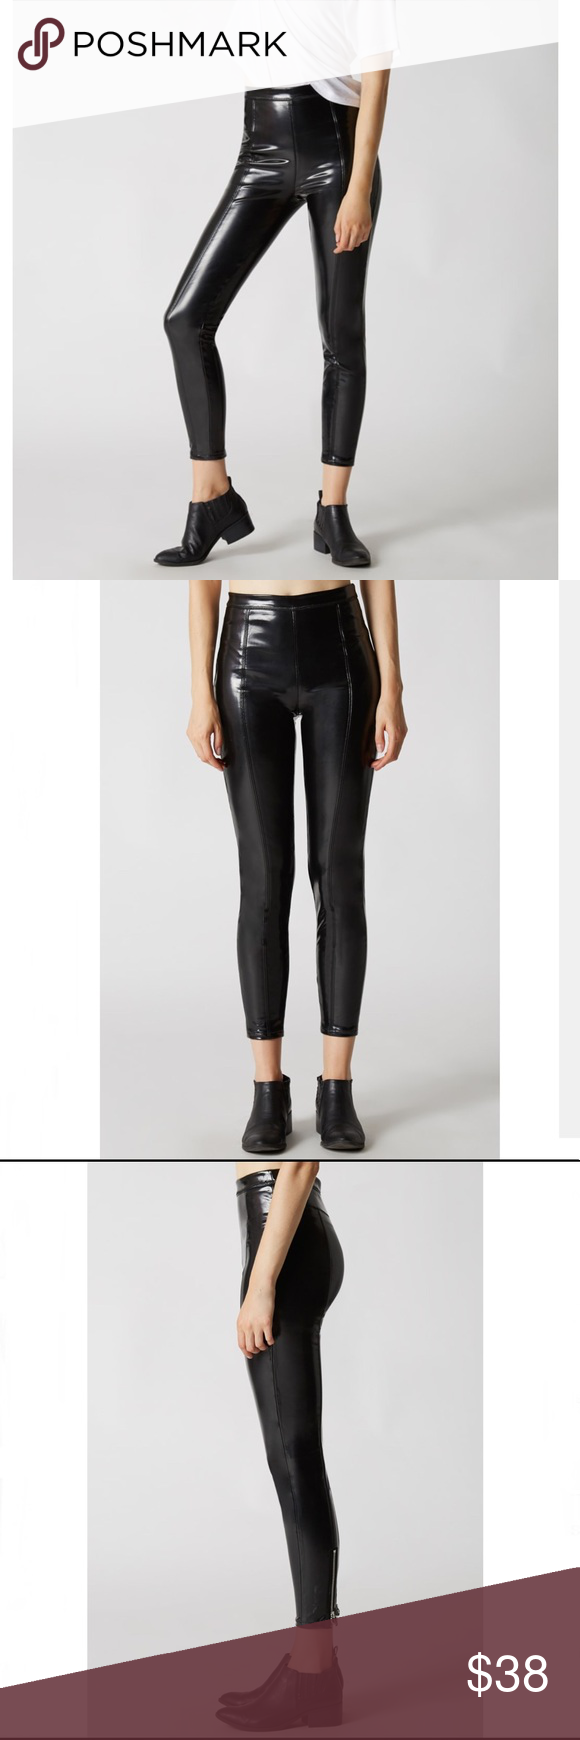 f4e96ab9811e28 NWT BlankNYC Pull on leggings SMOKE AND MIRRORS PANTS Shiny patent pull-ons  with circle zippers at back calf. [90% polyester 10% spandex ] Blank NYC  Pants ...